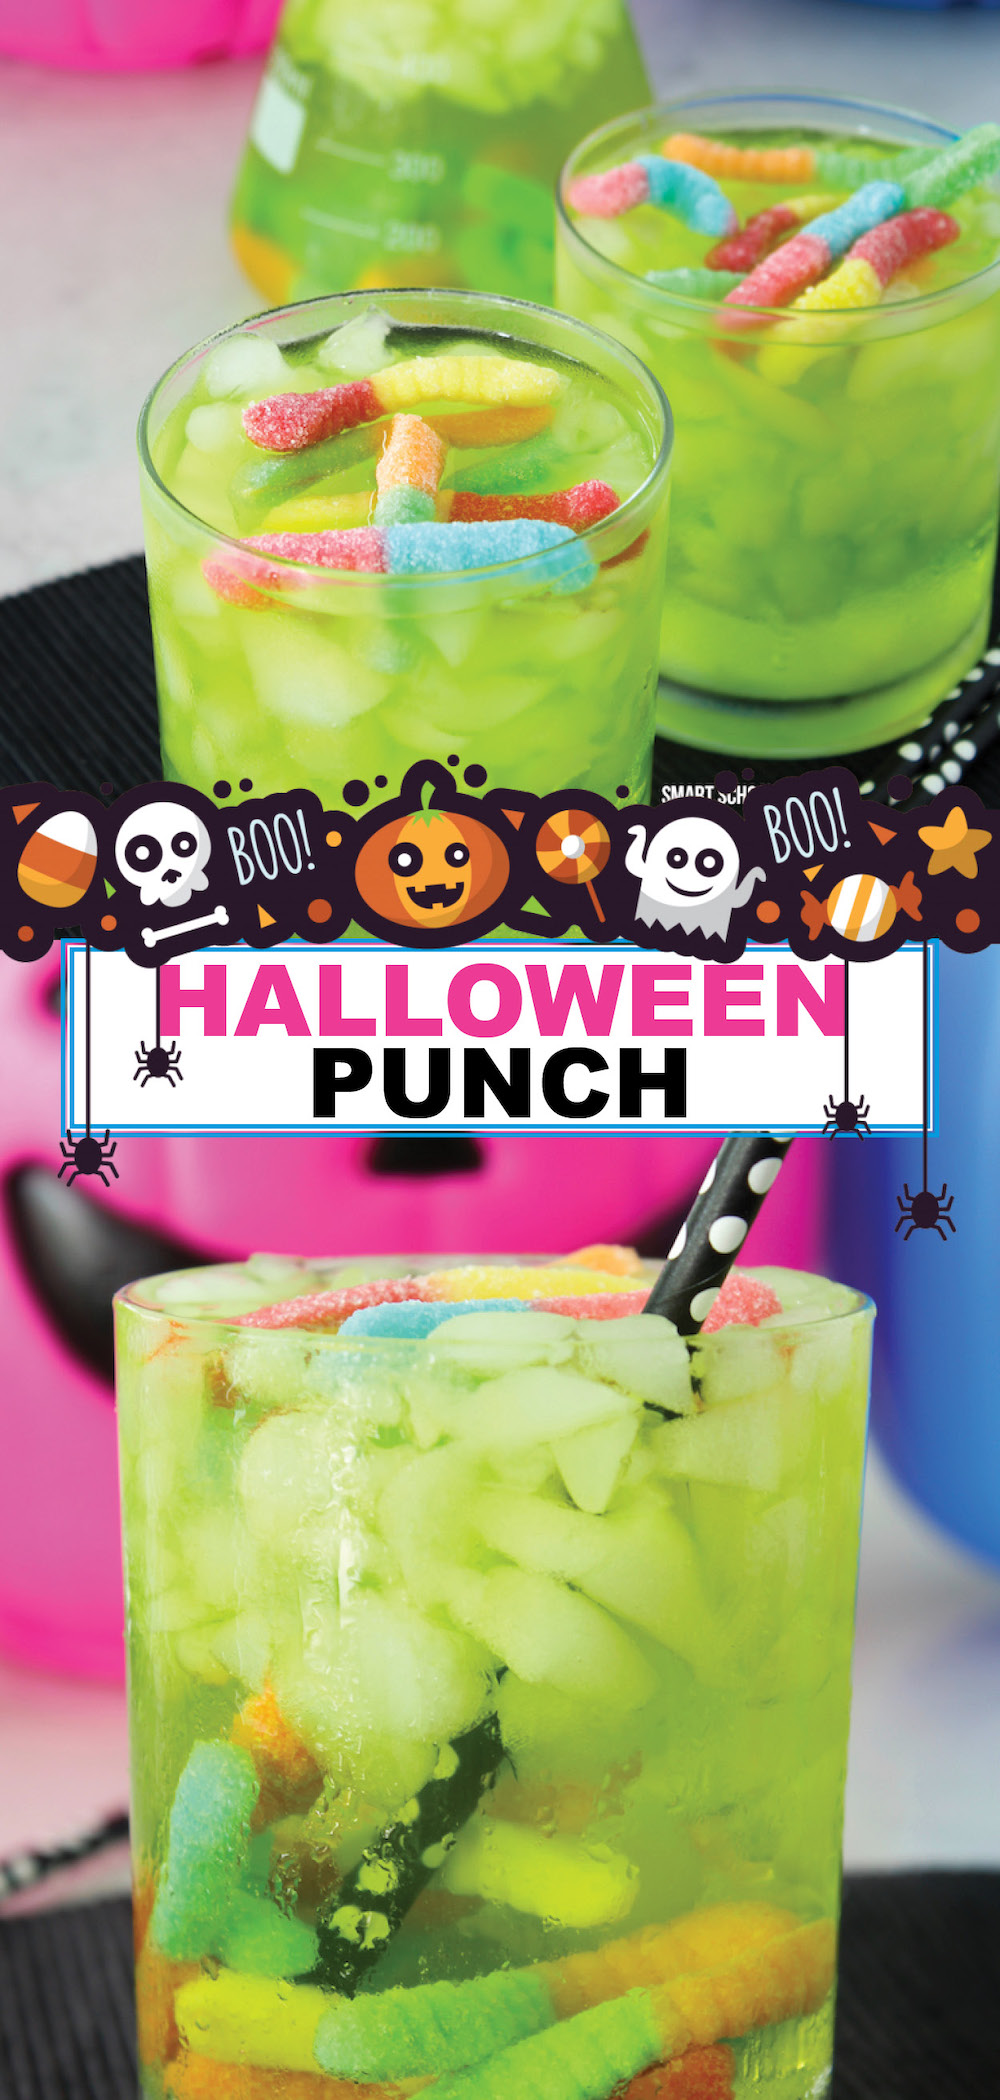 Here is our 3 ingredient Halloween worm punch! Bubbly, sweet, fun, and simple to make in a hurry. We love coming up with creative food ideas for the holidays.